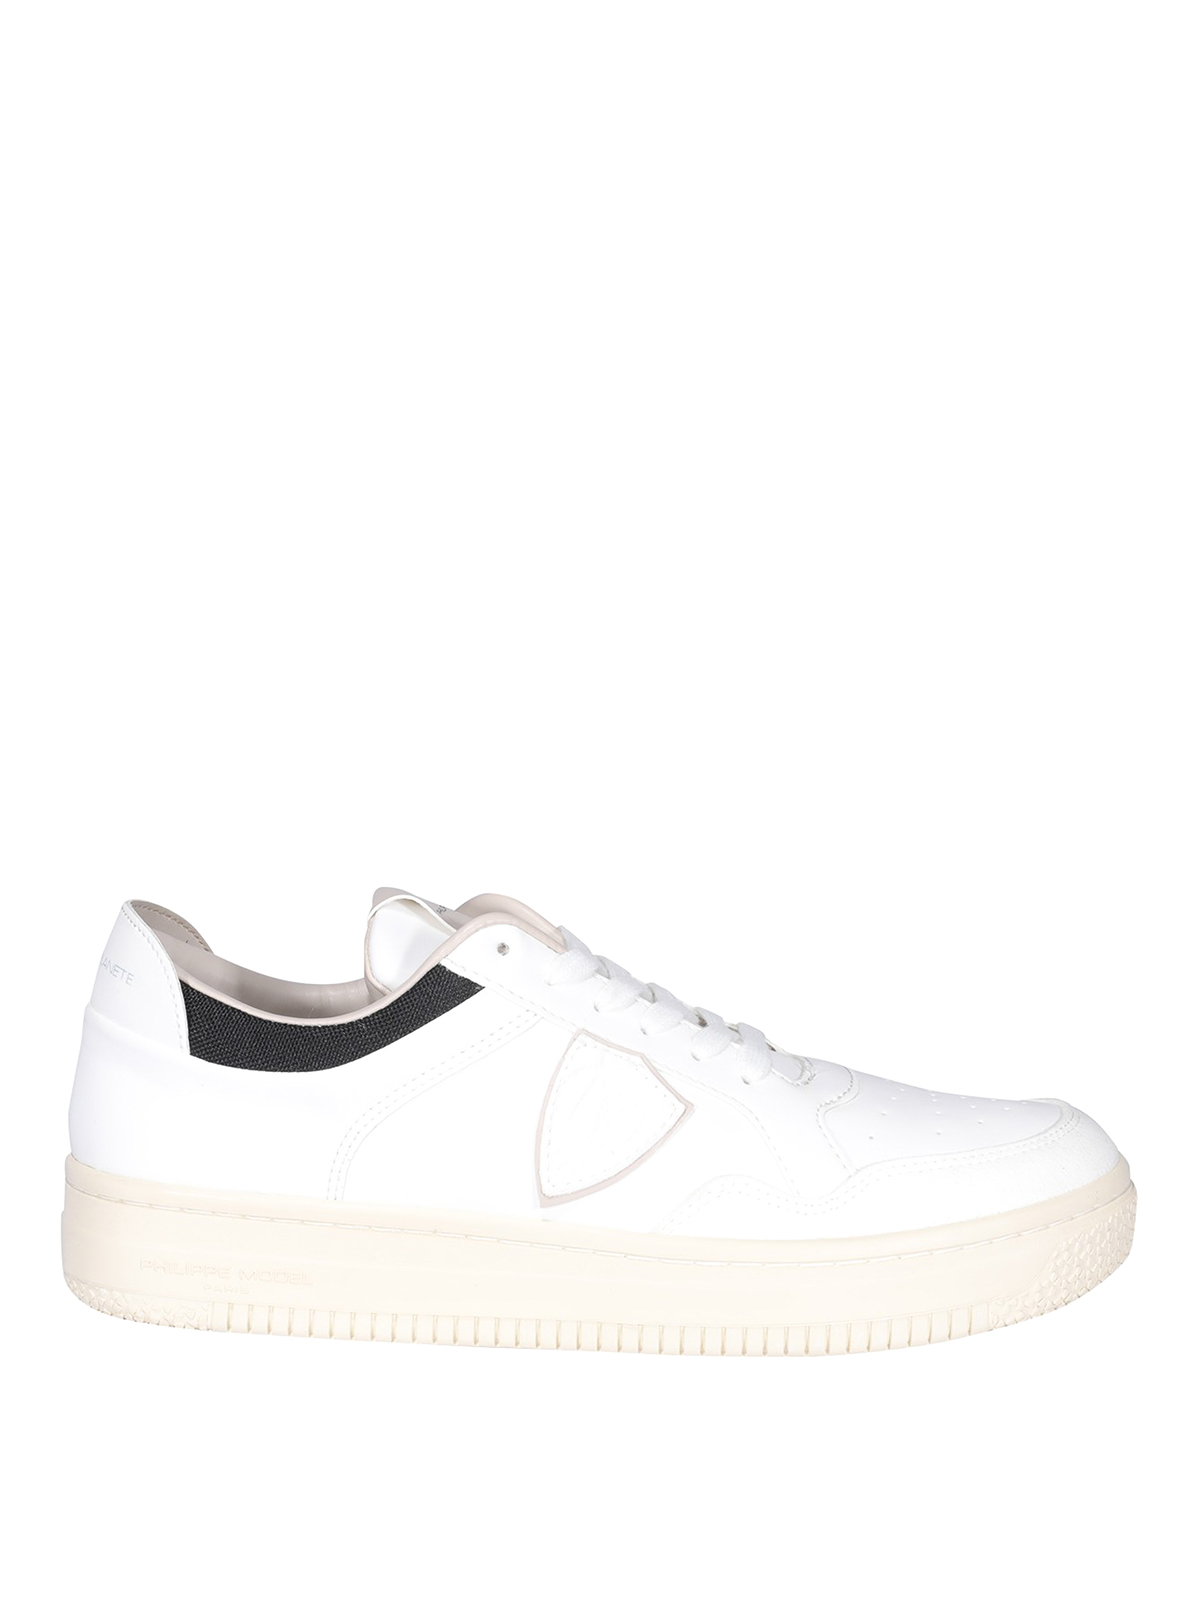 Philippe Model Sneakers LYON BLE ECO-FRIENDLY SNEAKERS